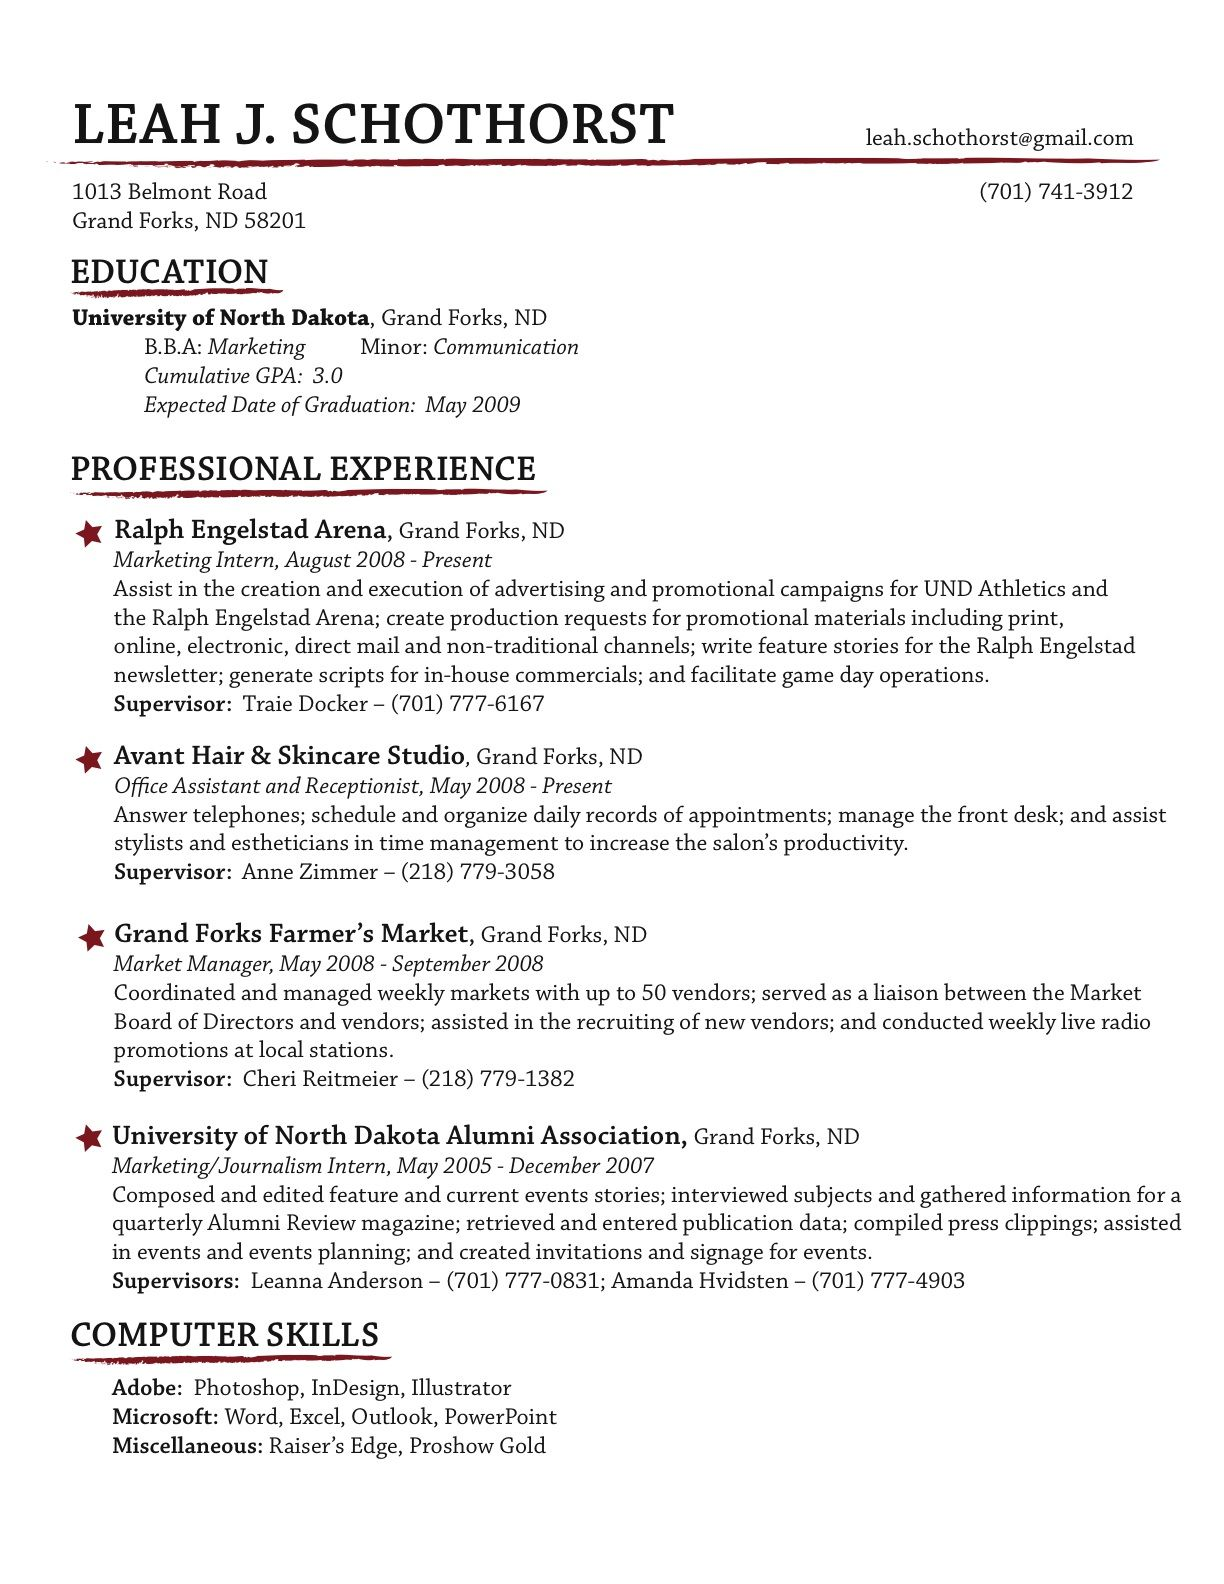 1000 images about resume styles columns design 1000 images about resume styles columns design resume and portfolio website